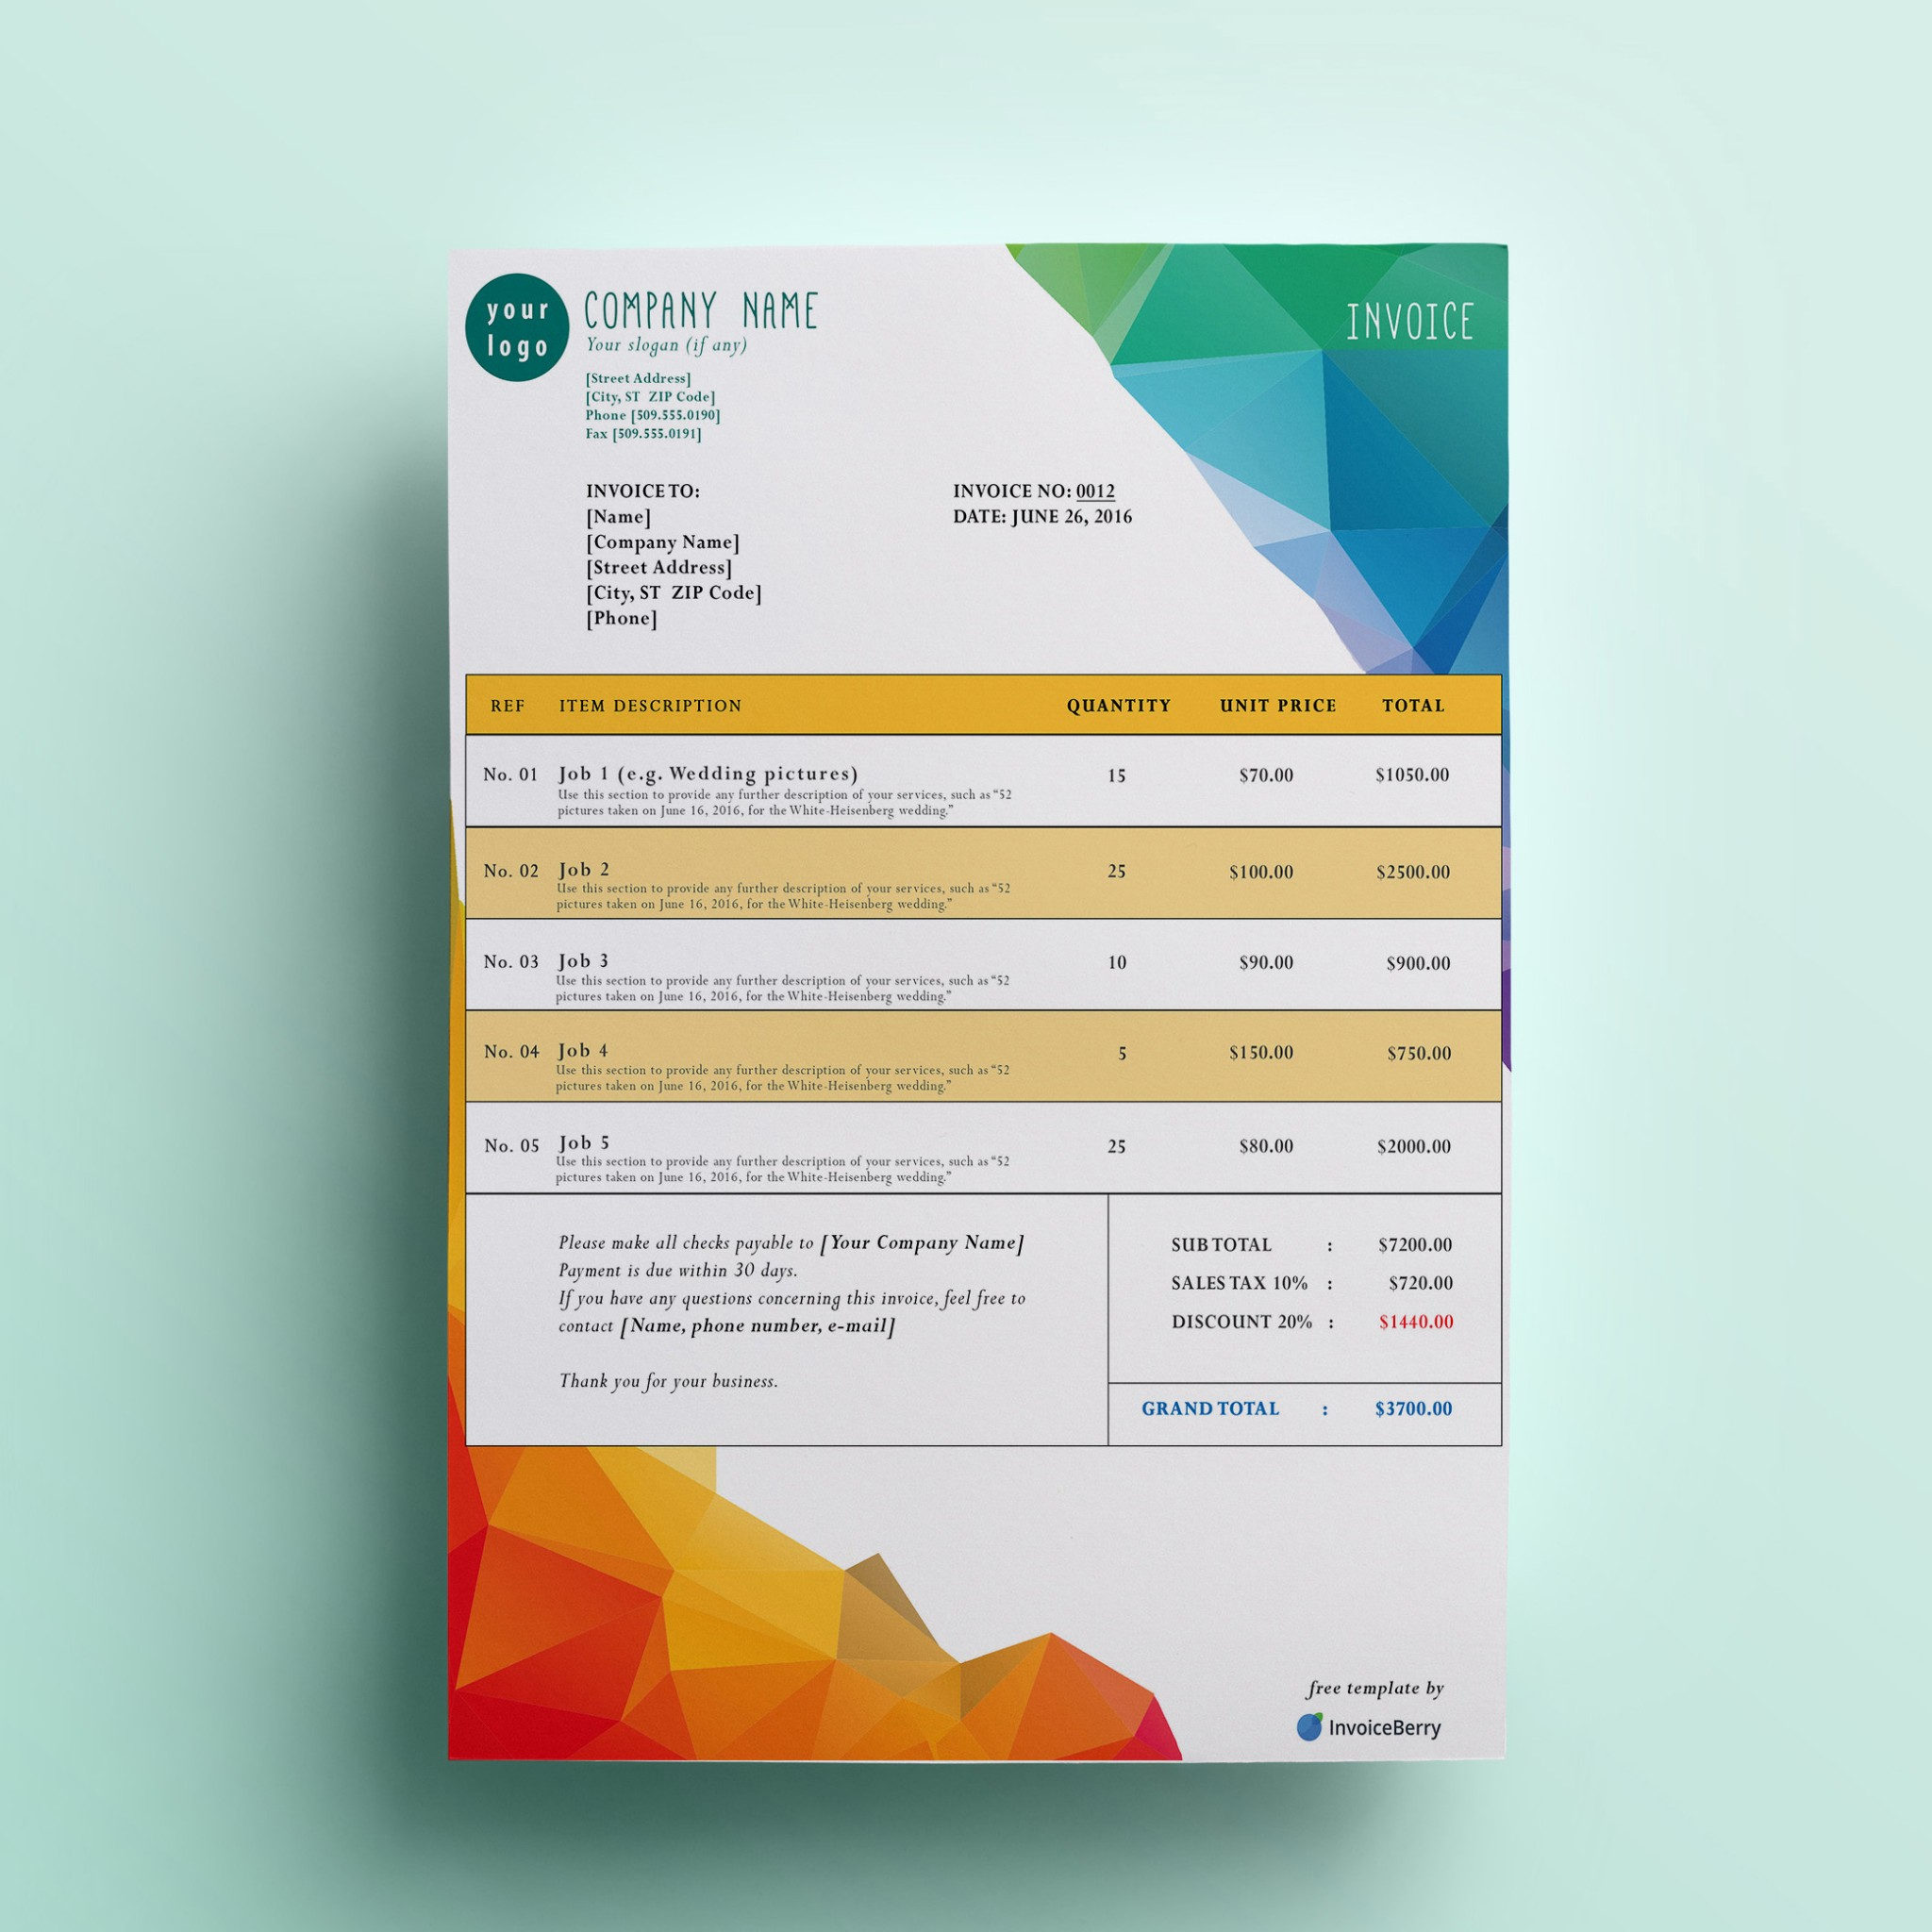 Free Invoice Templates By InvoiceBerry The Grid System - Corporate invoice template